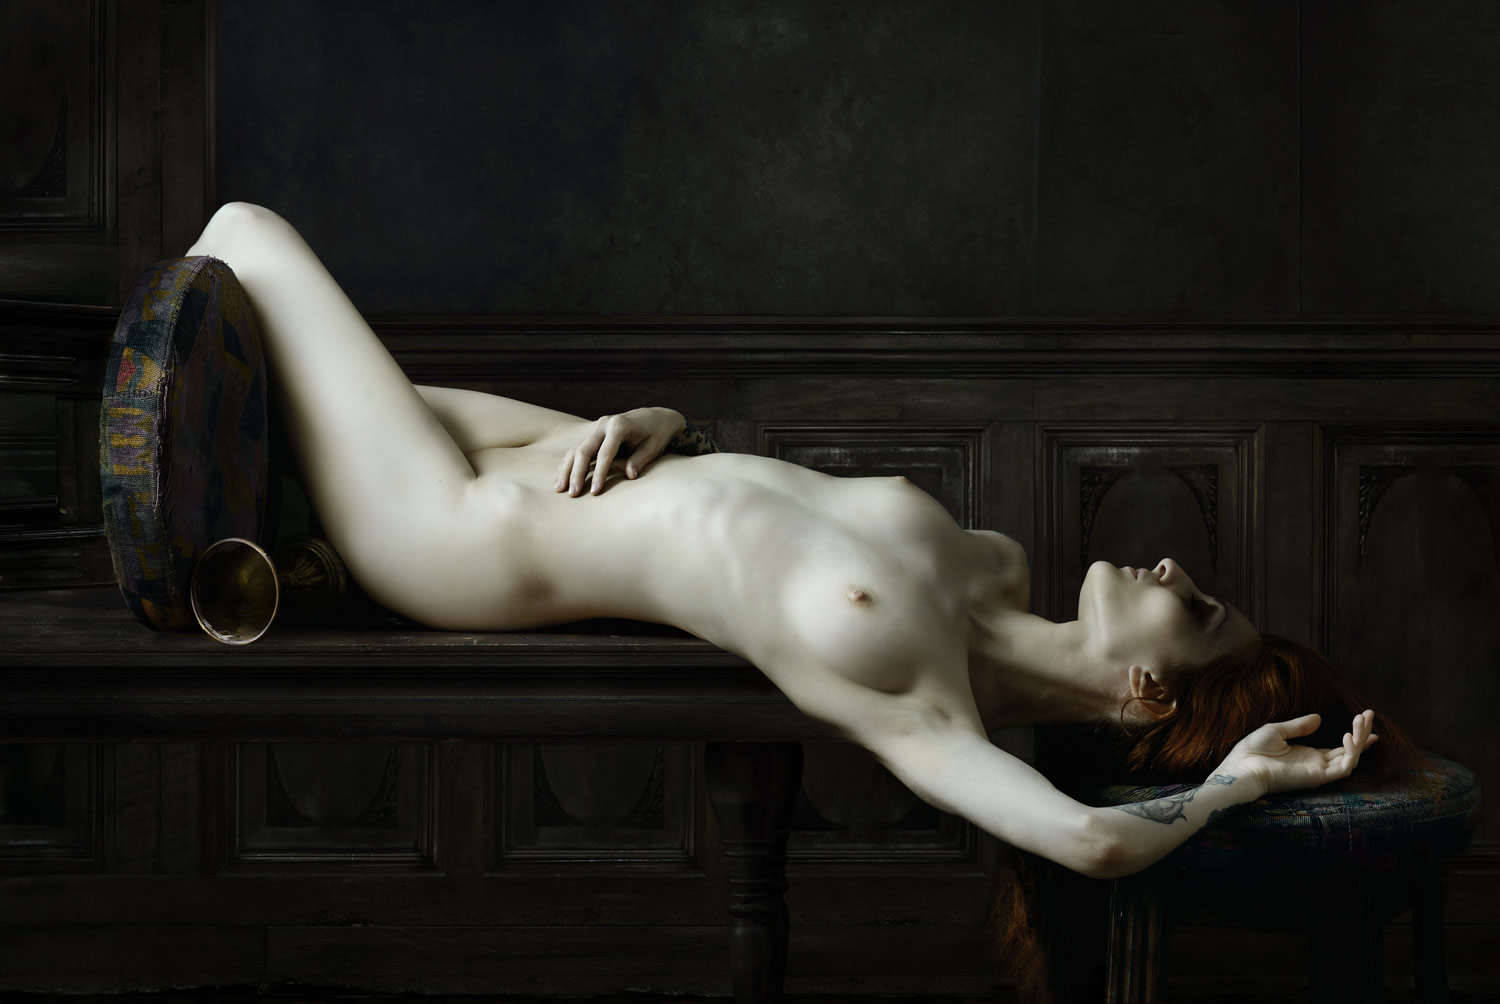 women's body,drifting series, photography by Olivier Valsecchi